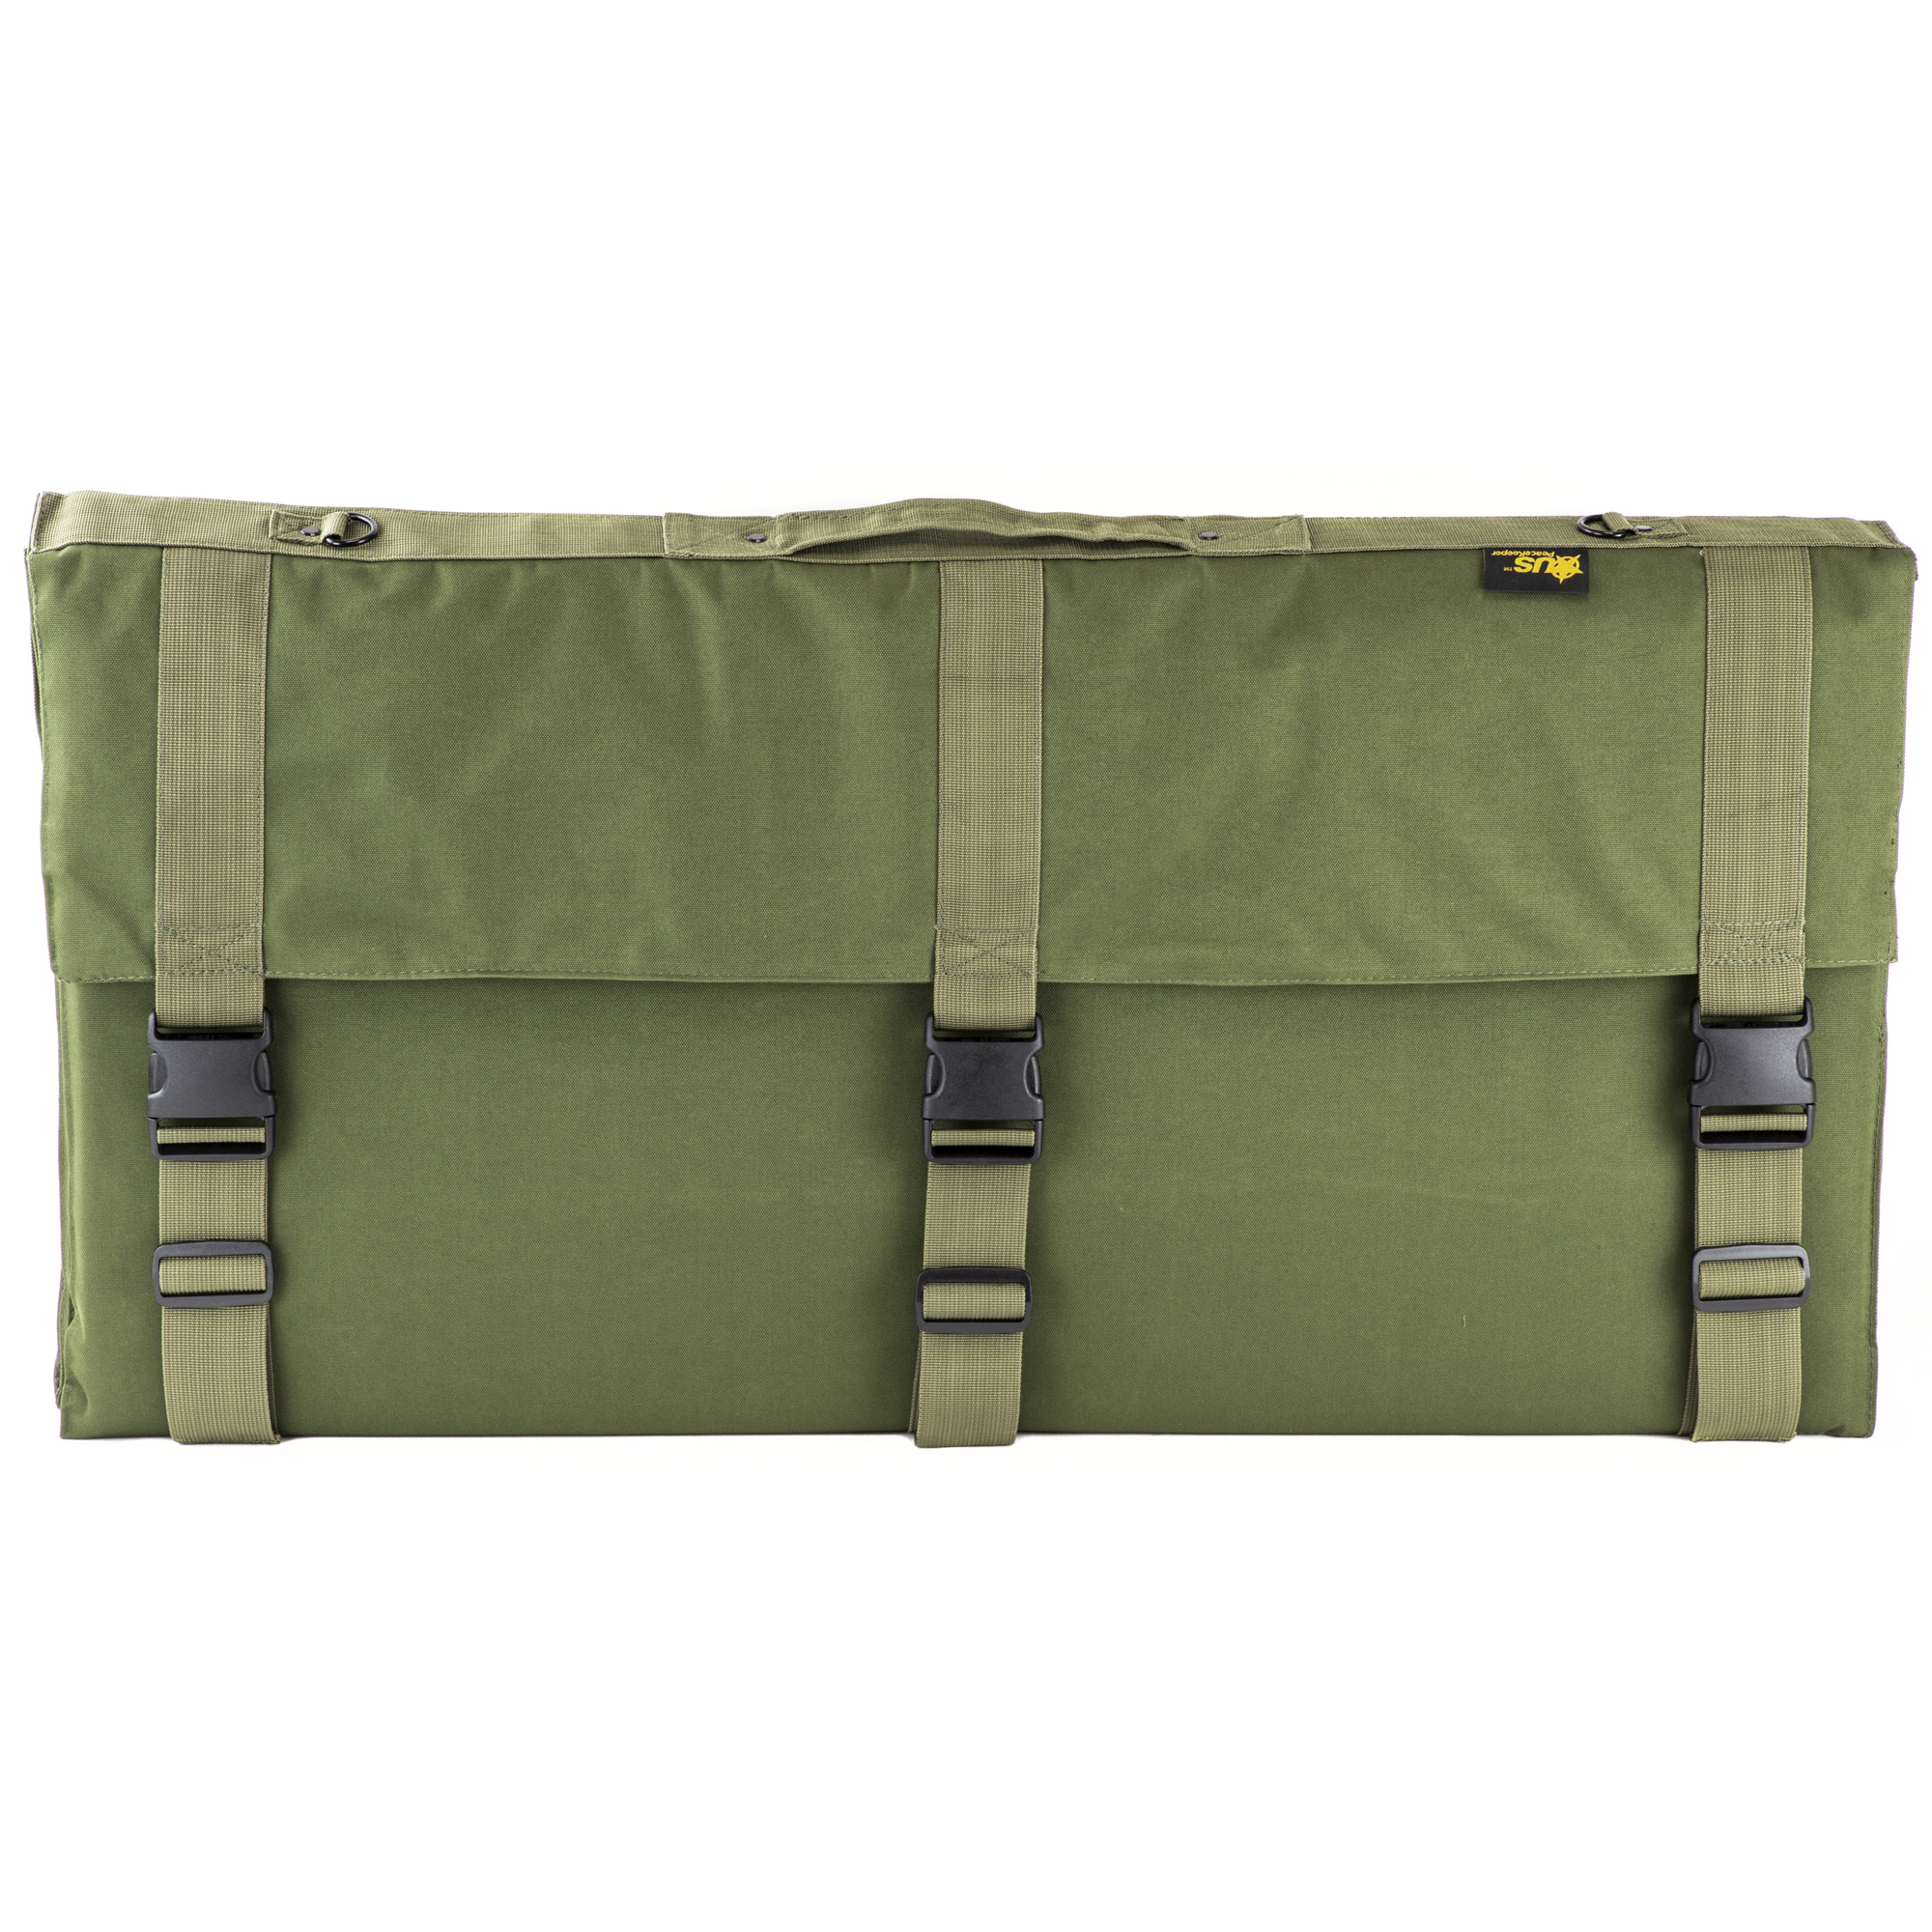 """This US PeaceKeeper Tactical Shooting mat is the best shooting mat on the market"""" period. This folded shooting mat will not roll up on you while you are getting squared away or taking your shot"""" or anything in between. It is .75"""" thick"""" so you will not feel the rocks under your mat and is still the right thickness for competition. It is 81.5"""" in length and 36"""" in width; so no pulling up your shot because your elbows are hanging off this mat. It features a non-slip area for your elbows"""" pockets for your ammo"""" log book"""" and even a ballistic cheat sheet window. Three wide buckles secure this mat when folded and closed."""